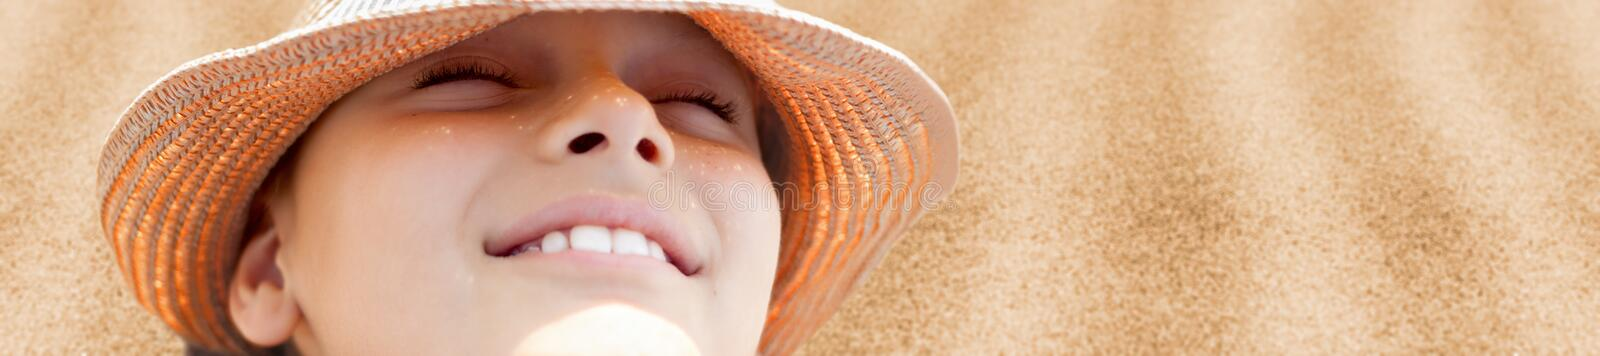 Summer hot background happy child face royalty free stock image